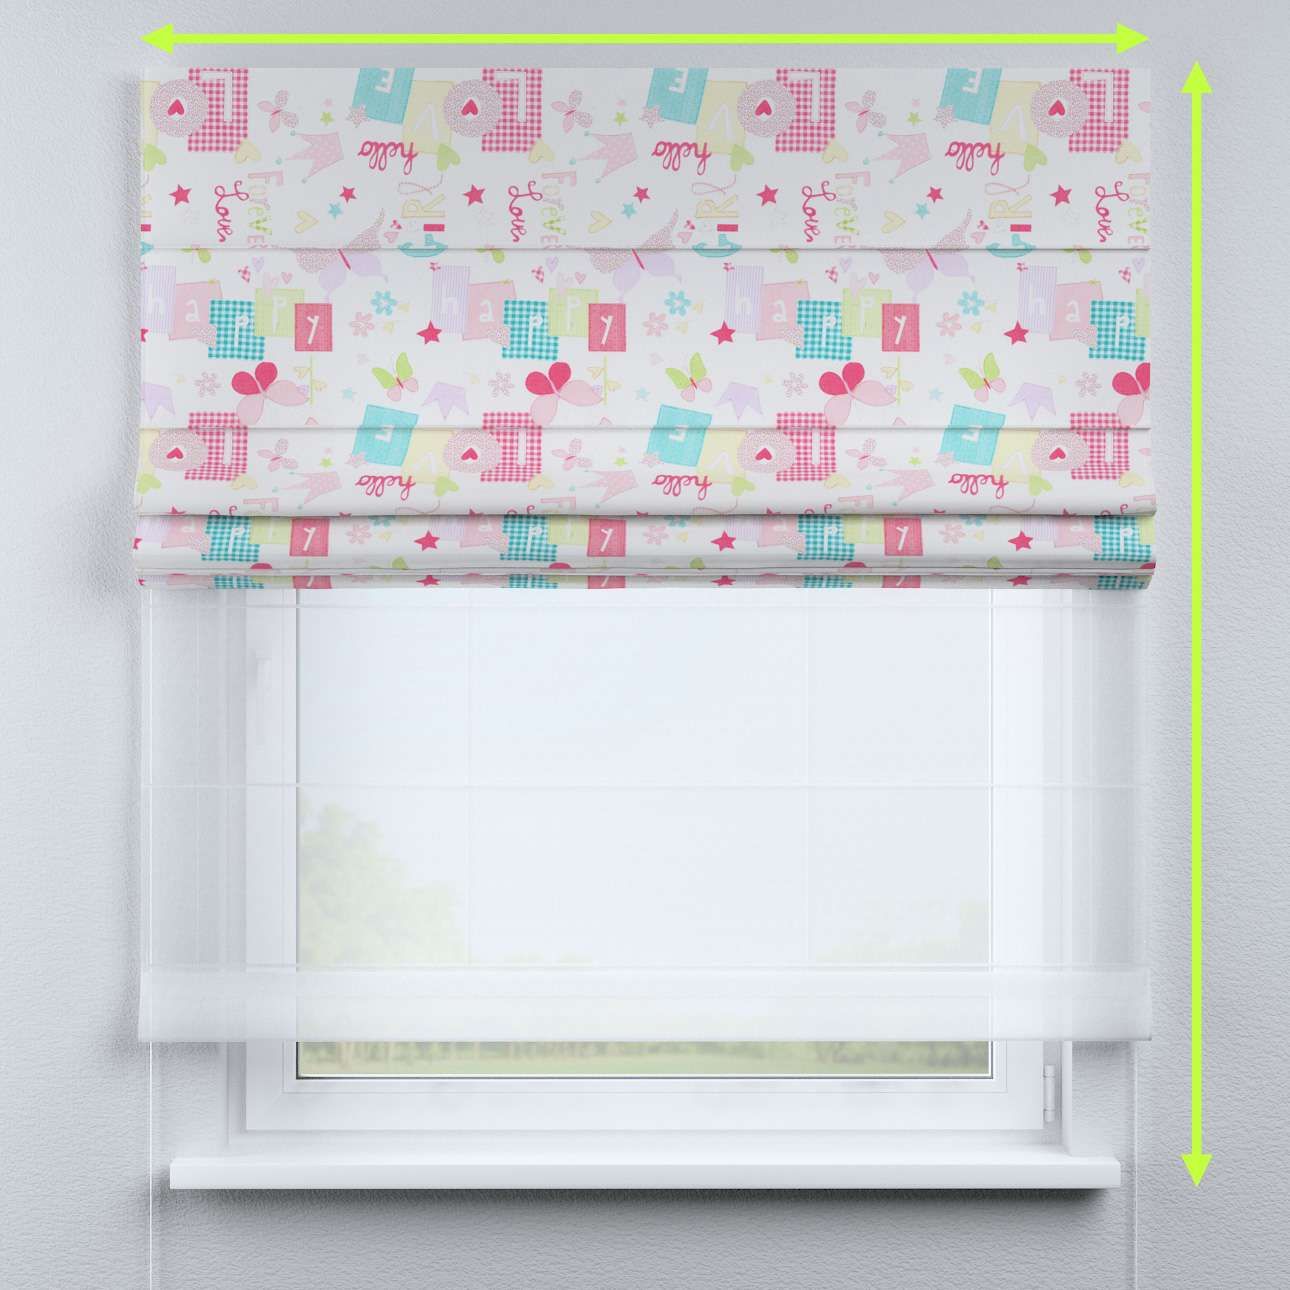 Roleta rzymska Duo 130×170cm w kolekcji Little World, tkanina: 141-51